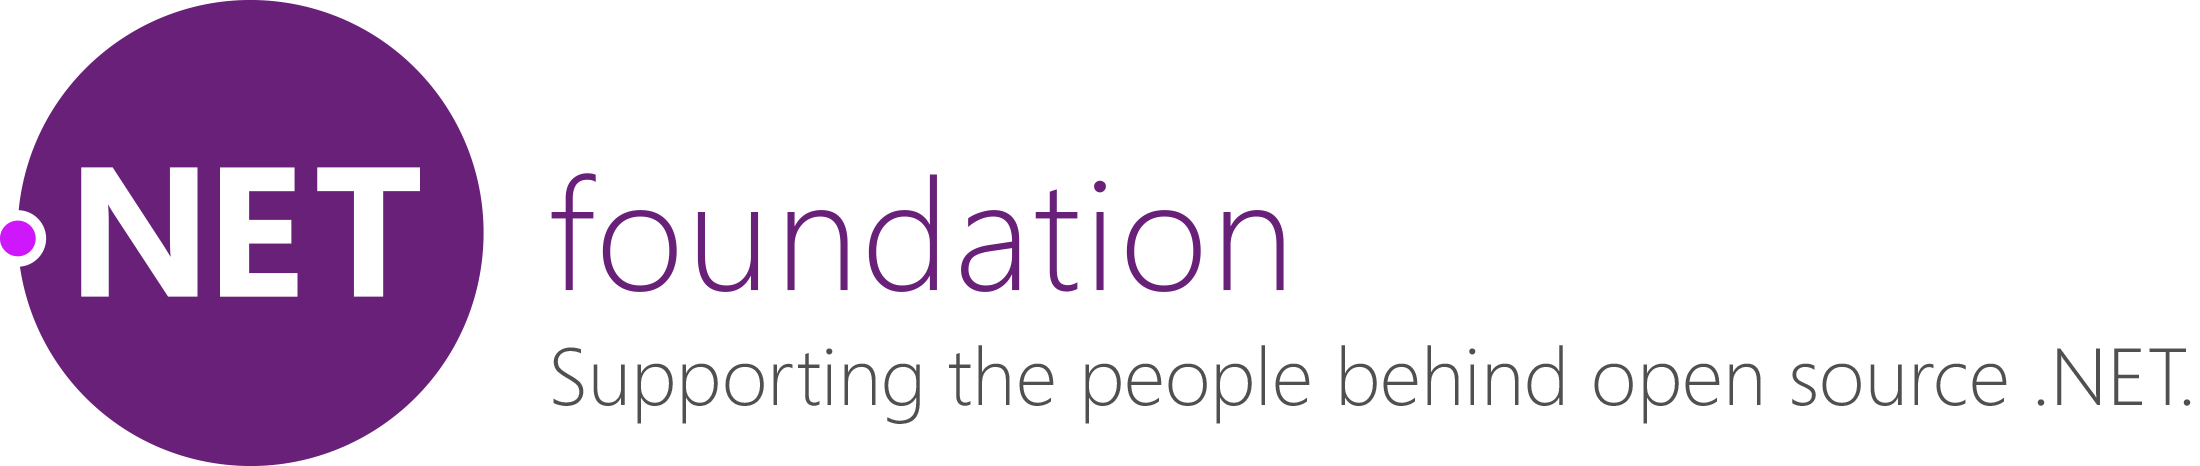 .NET Foundation Board Candidate!